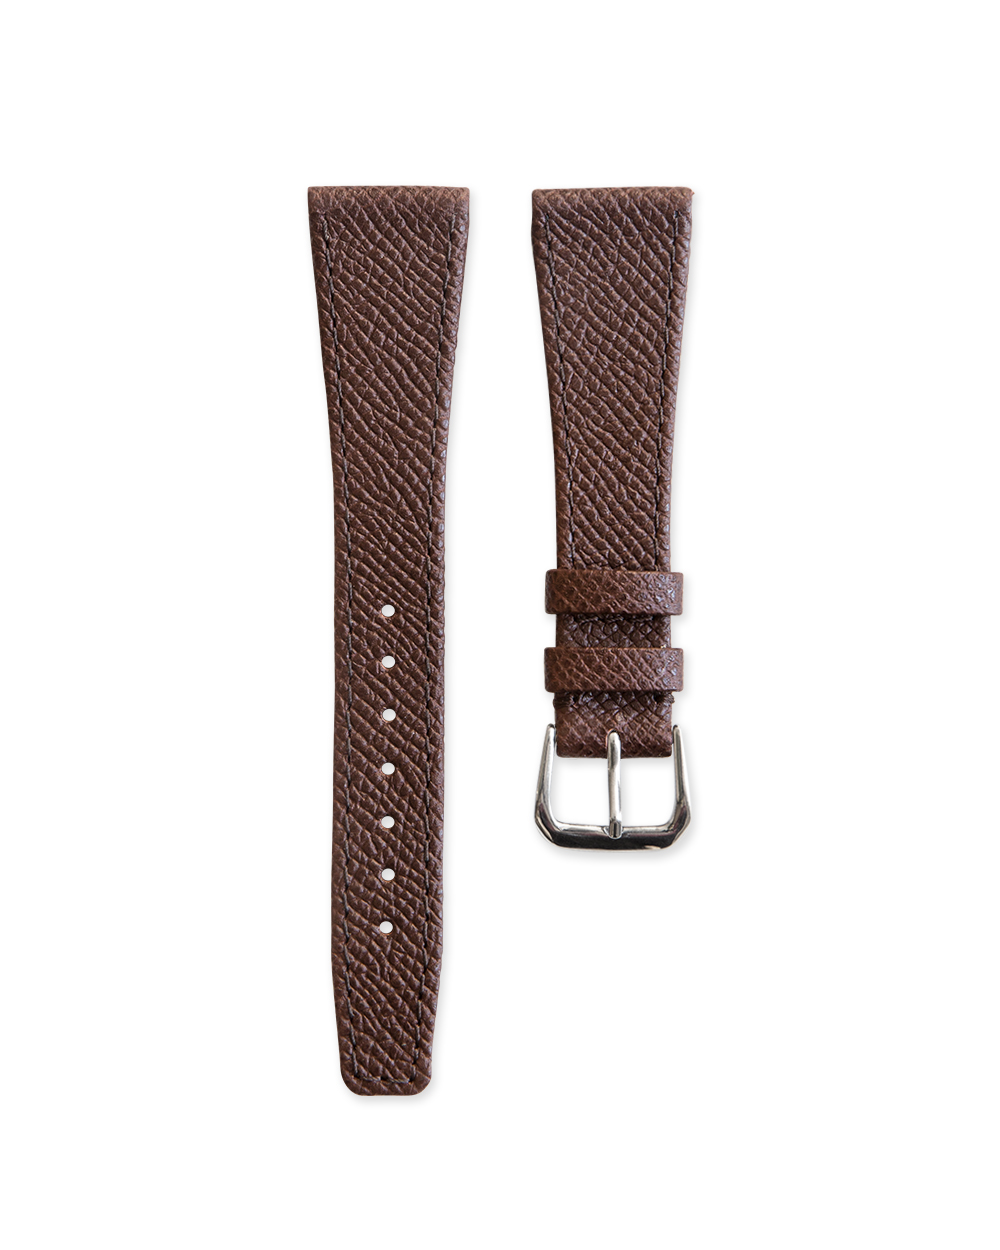 SERICA Watch Straps 1953 Chocolate